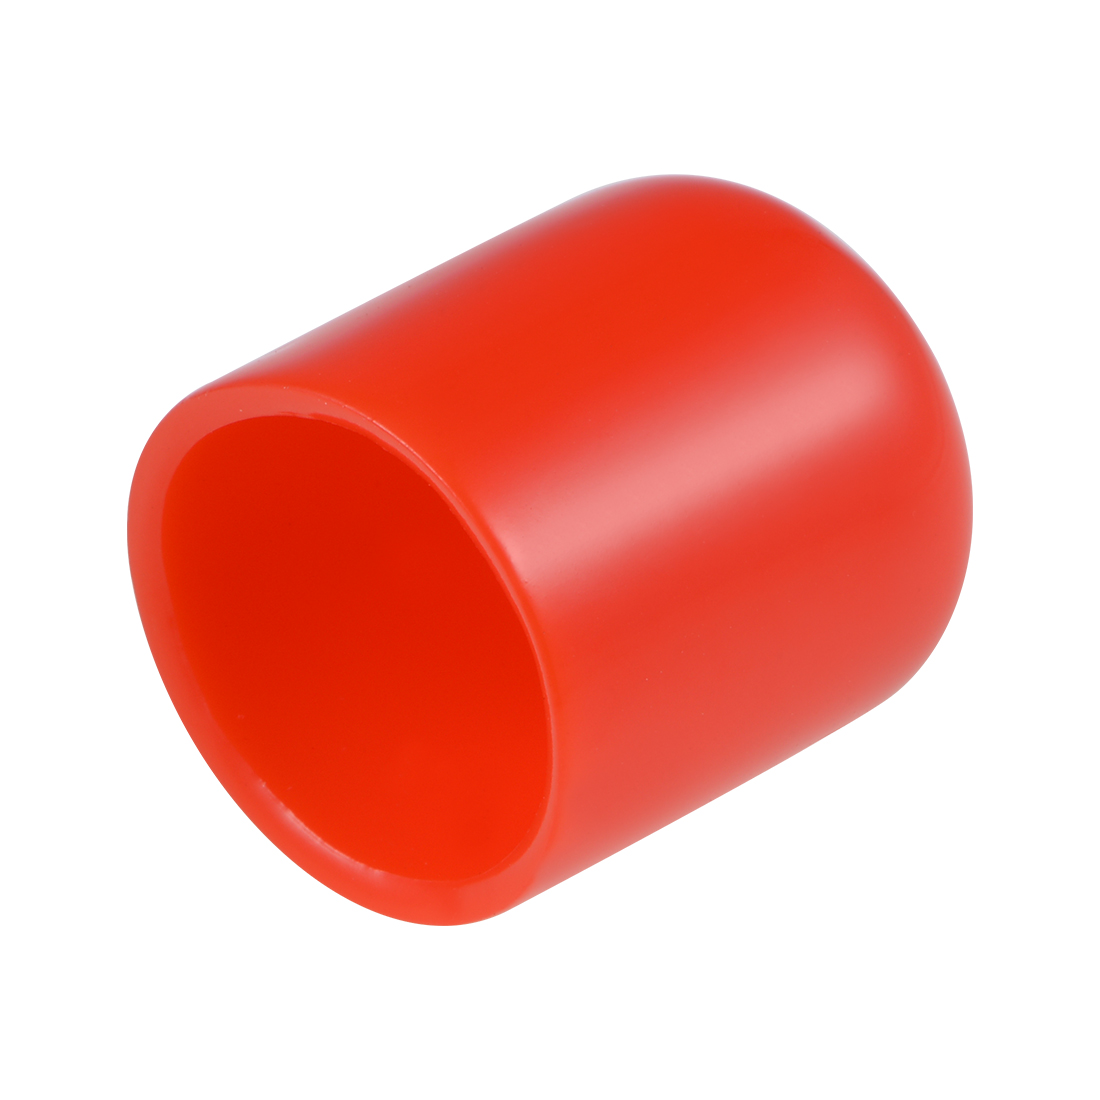 Screw Thread Protectors, 19mm ID 26mm Length Round End Cap Cover Red 20pcs